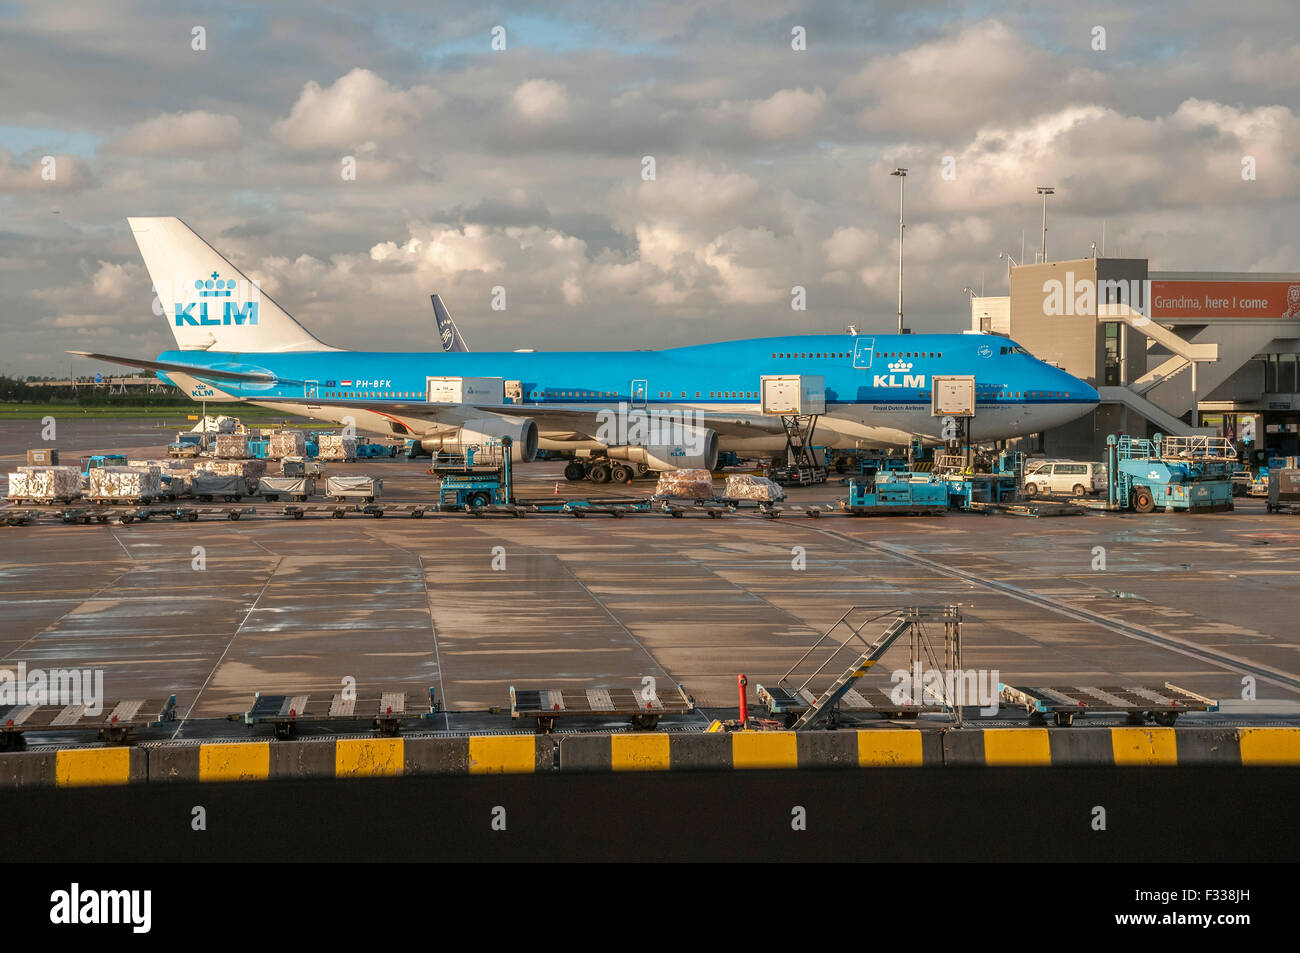 KLM Boeing 747 Jumbo jet at Schipol airport Amsterdam. - Stock Image